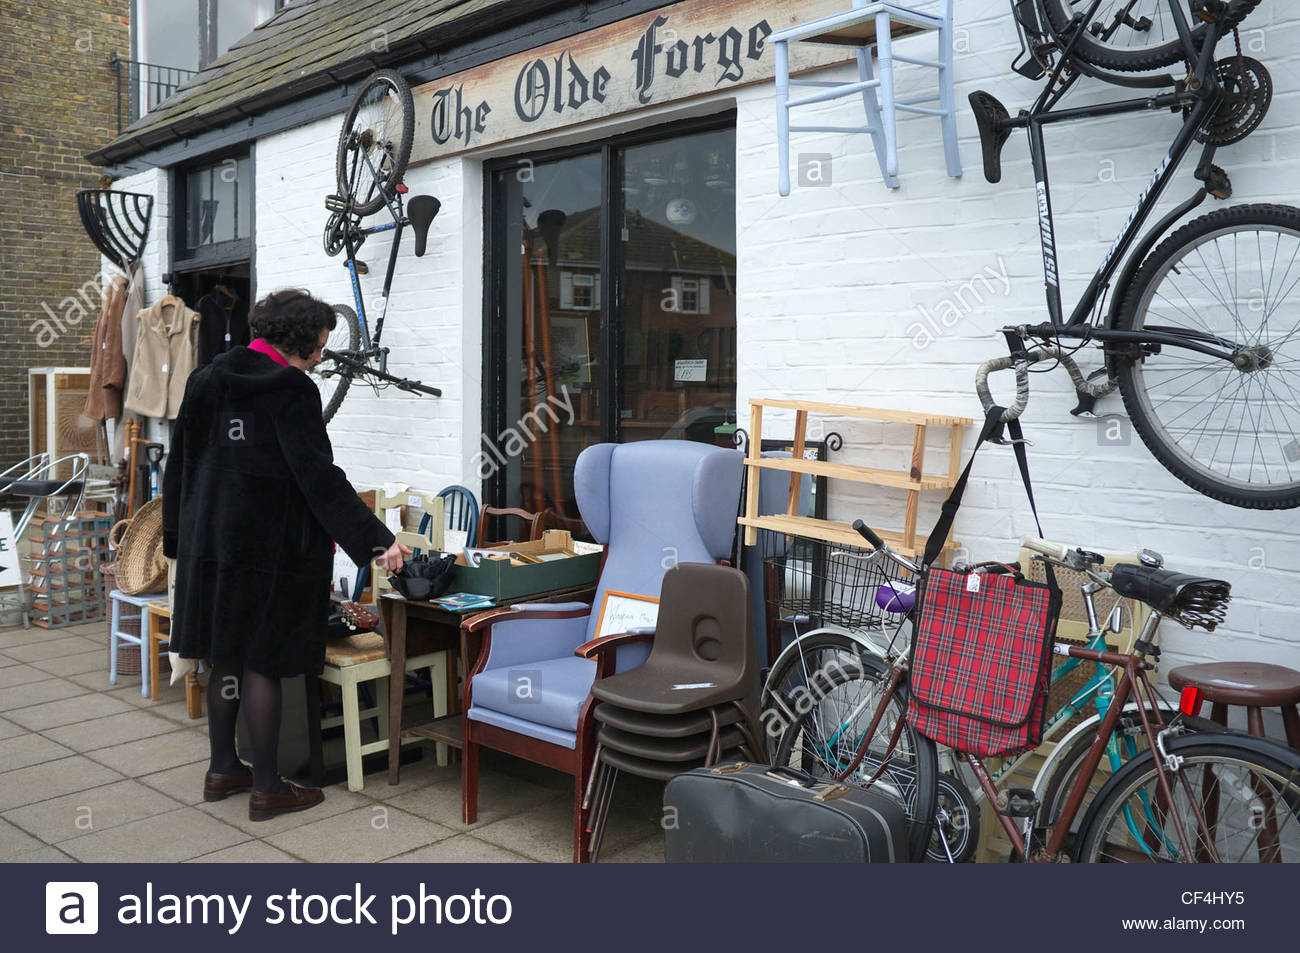 The Olde Forge second hand shop in the High Street, Deal, Kent, UK. - Stock Image